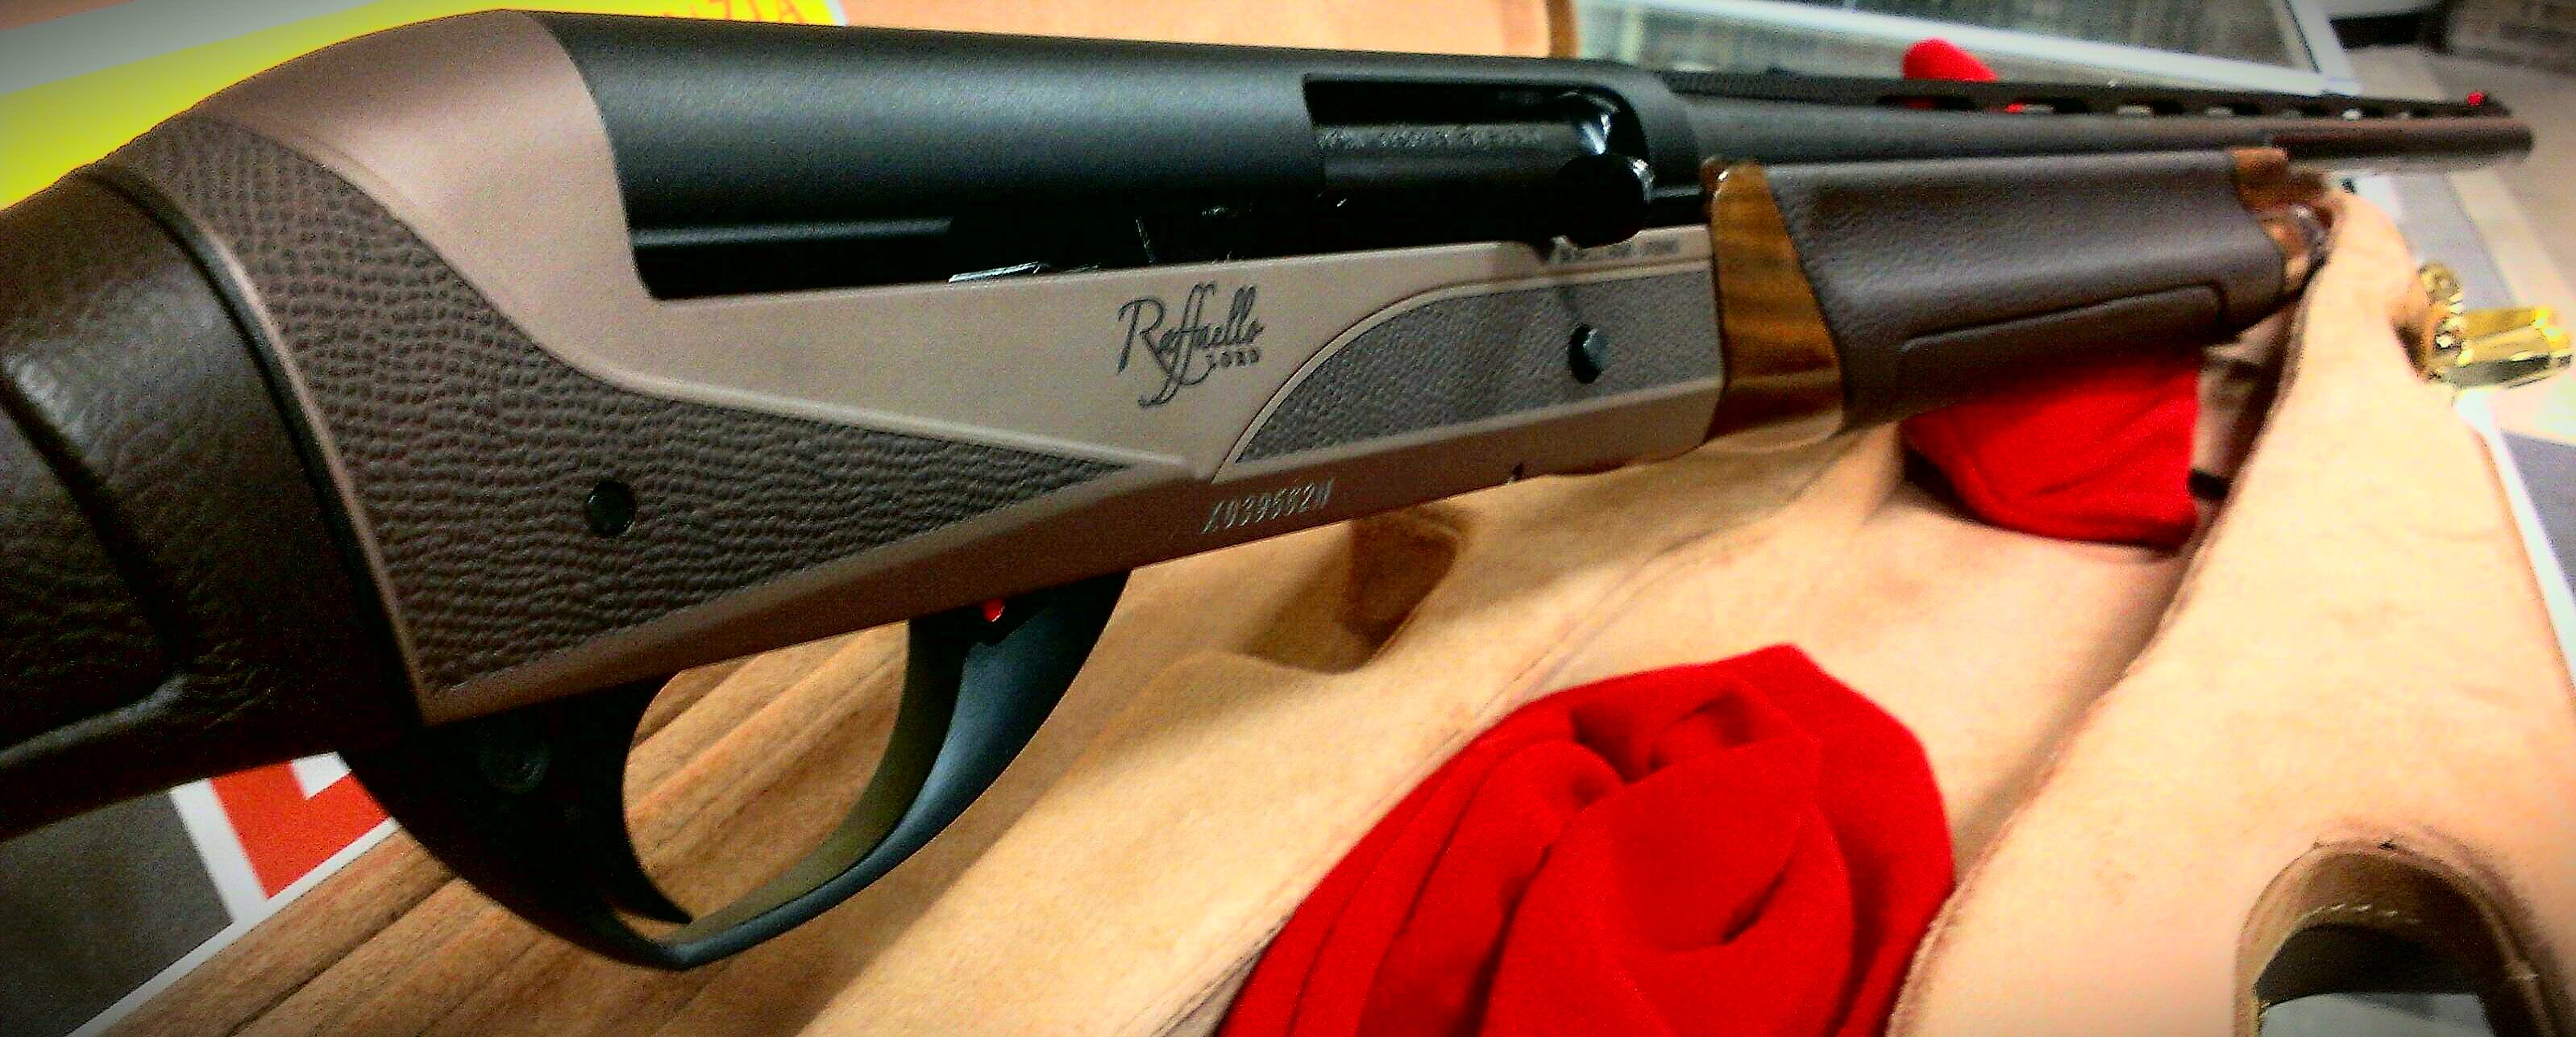 1 of only 250 sent to the united states benelli raffaello lord 20